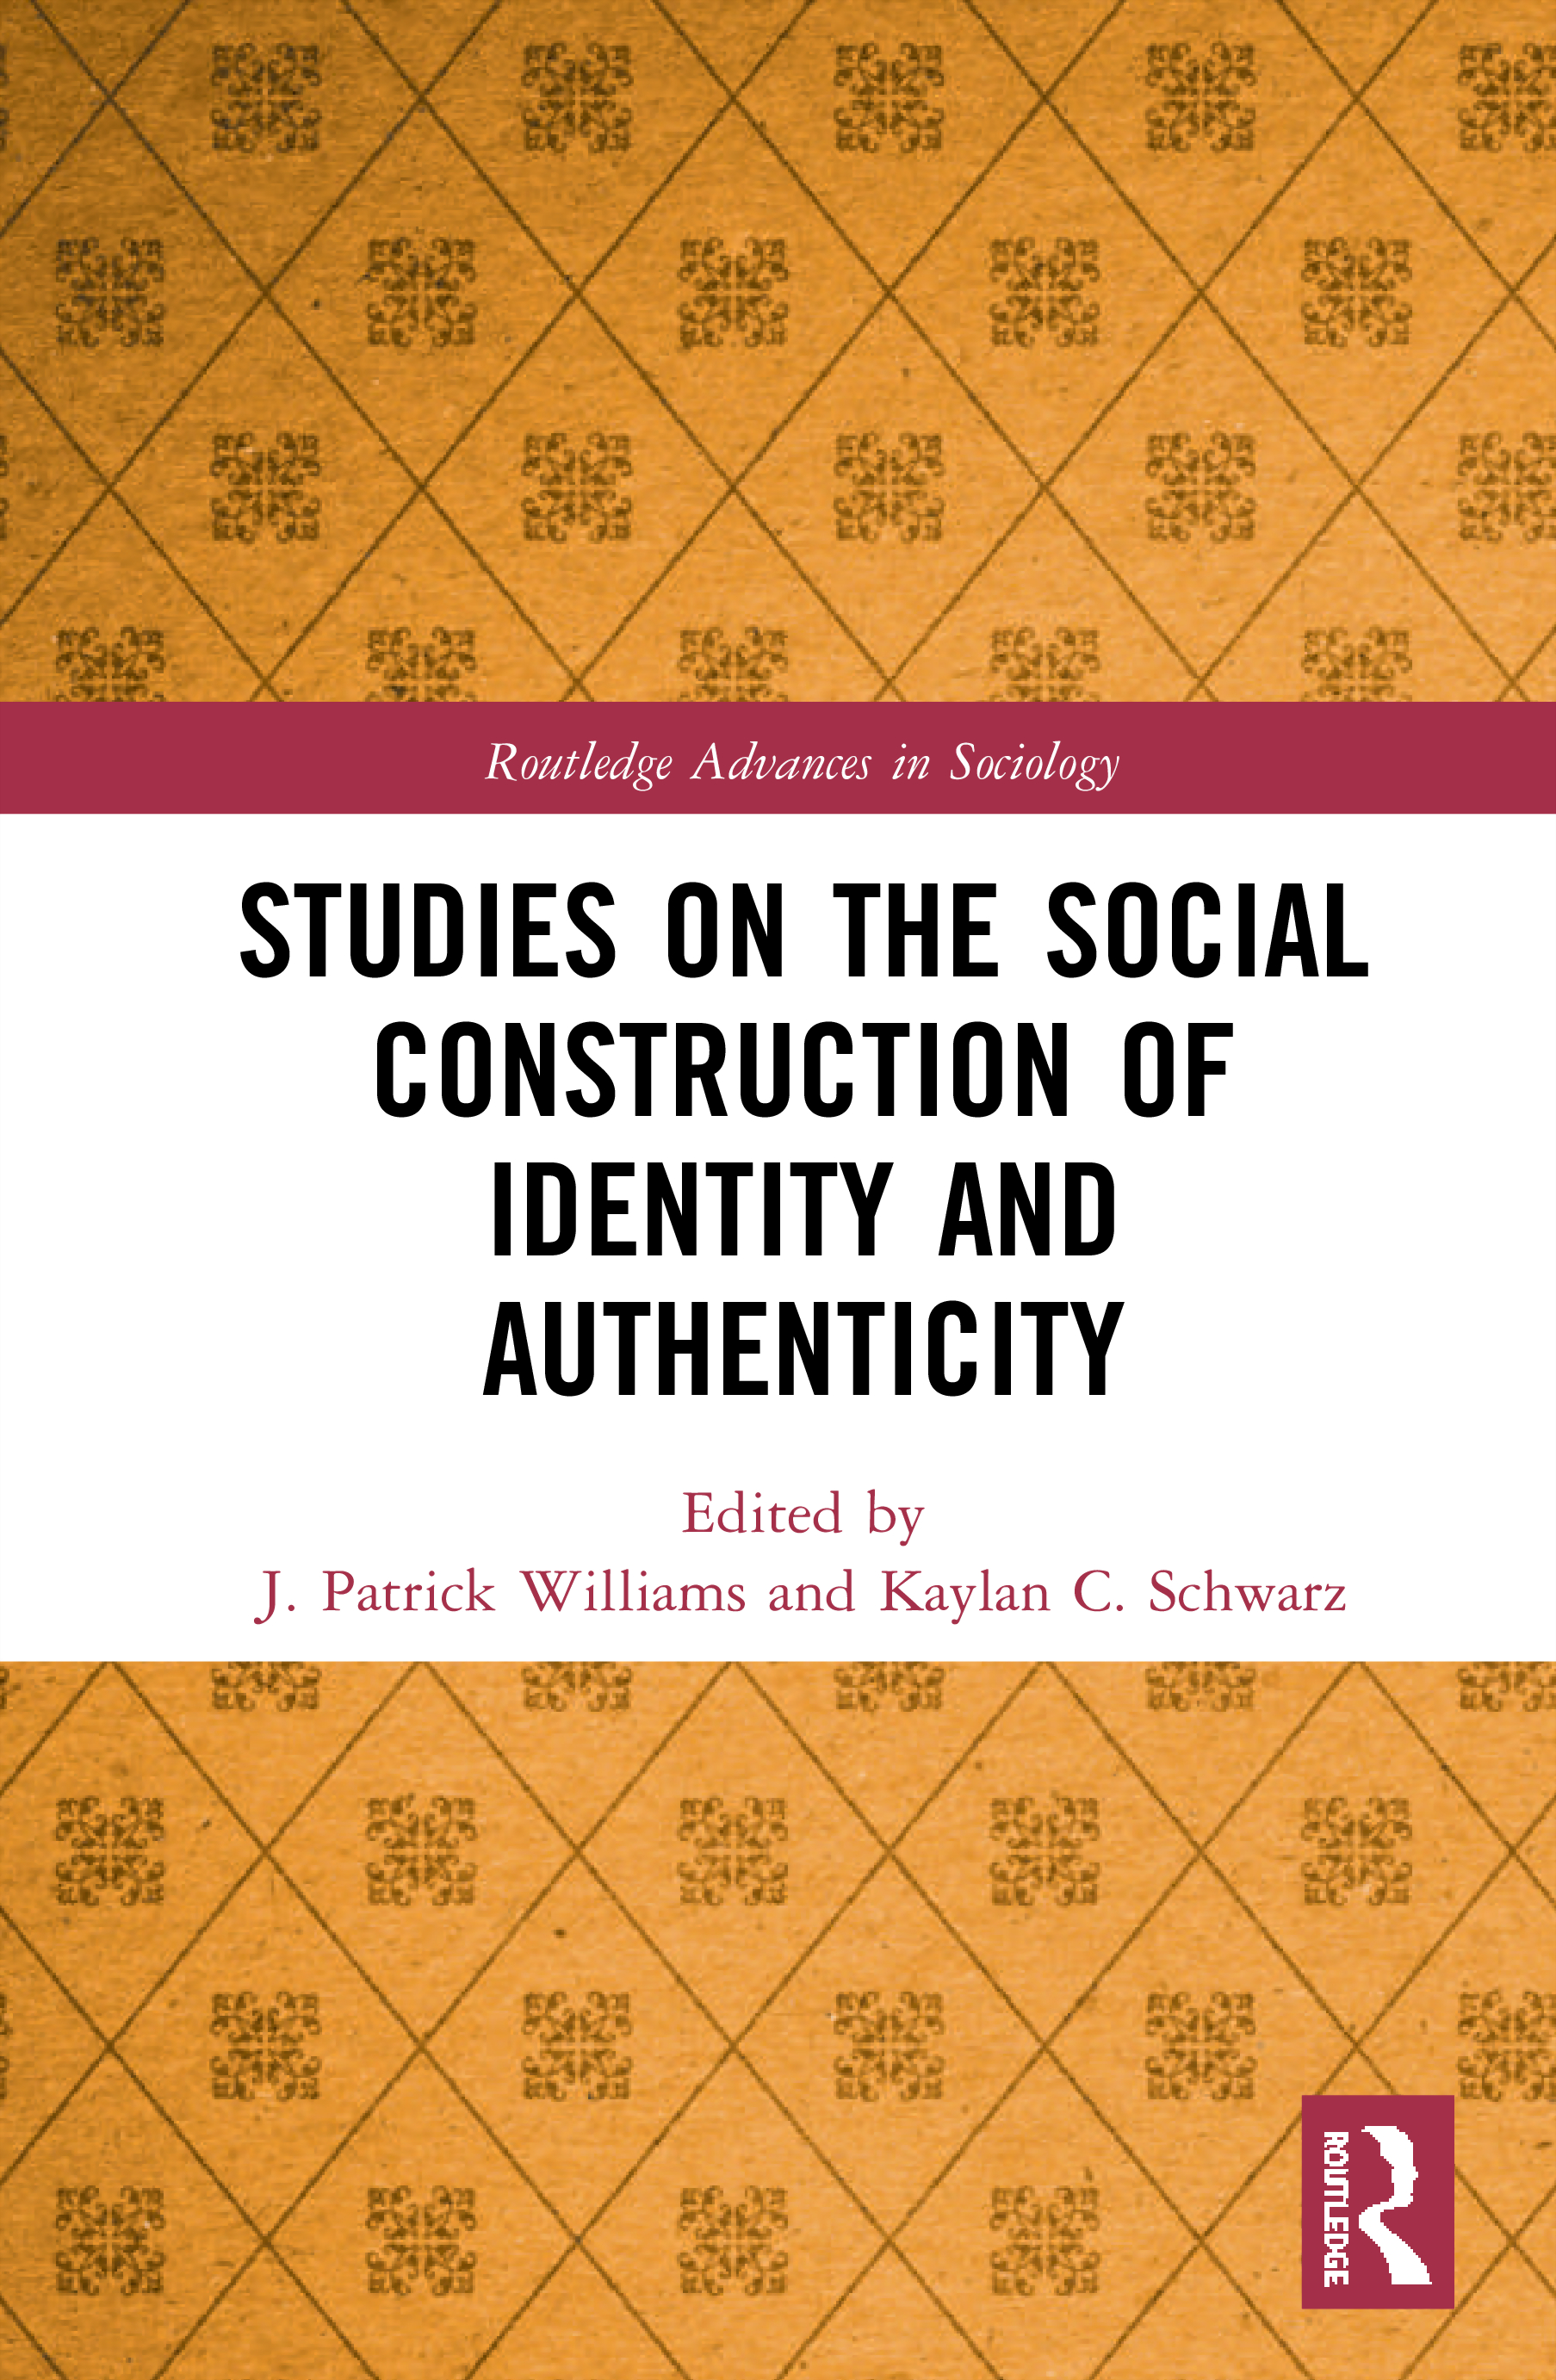 Studies on the Social Construction of Identity and Authenticity book cover